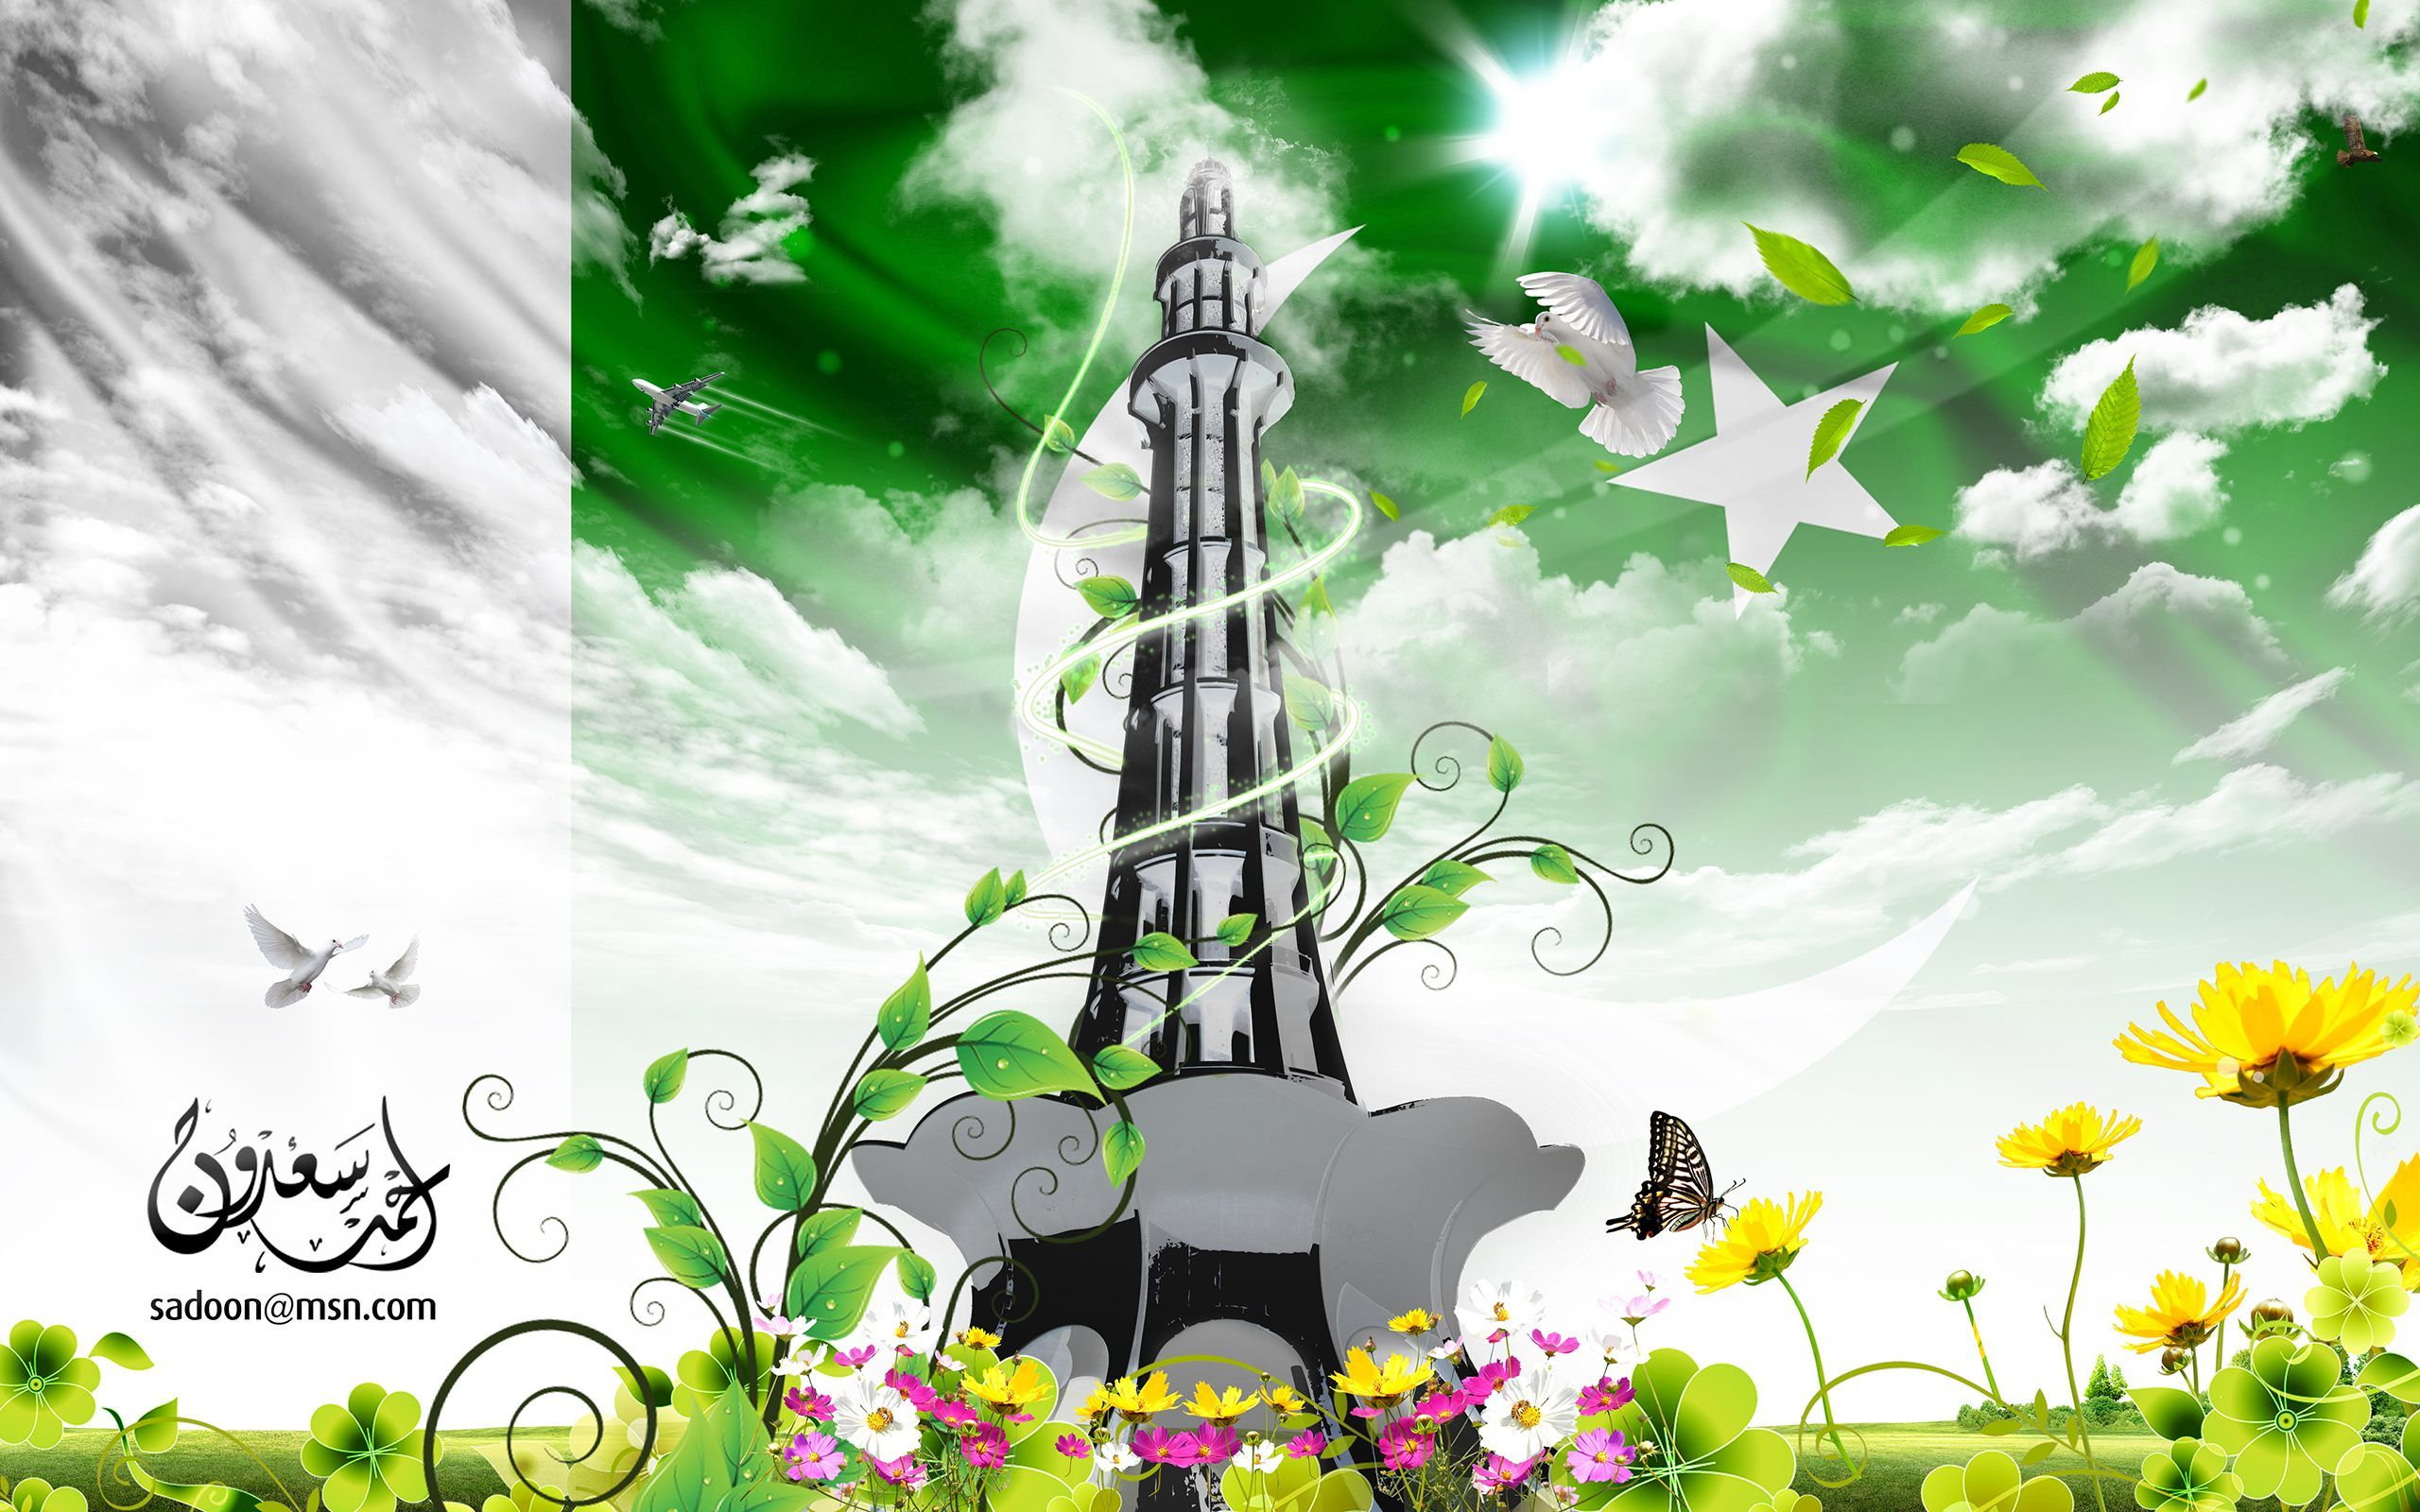 Pakistan Flag Wallpapers Android Apps on Google Play